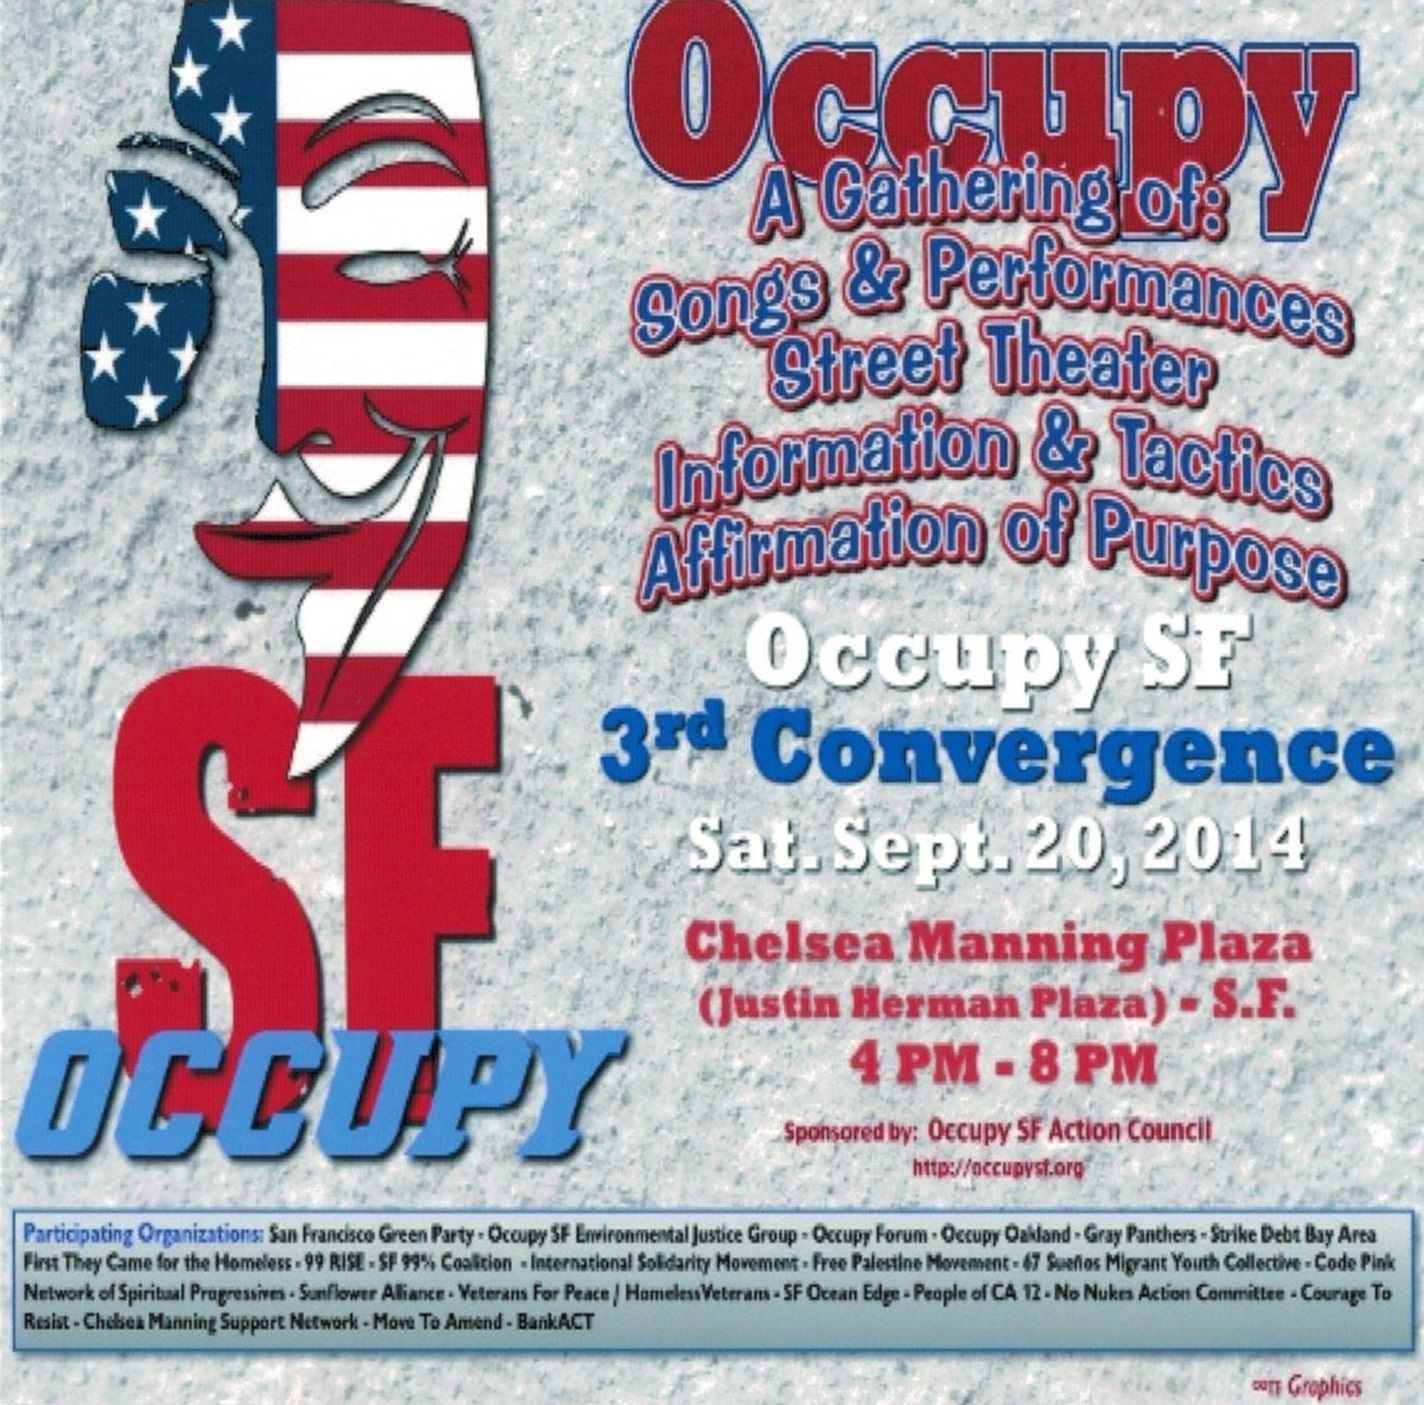 Occupy SF 3rd Convergence